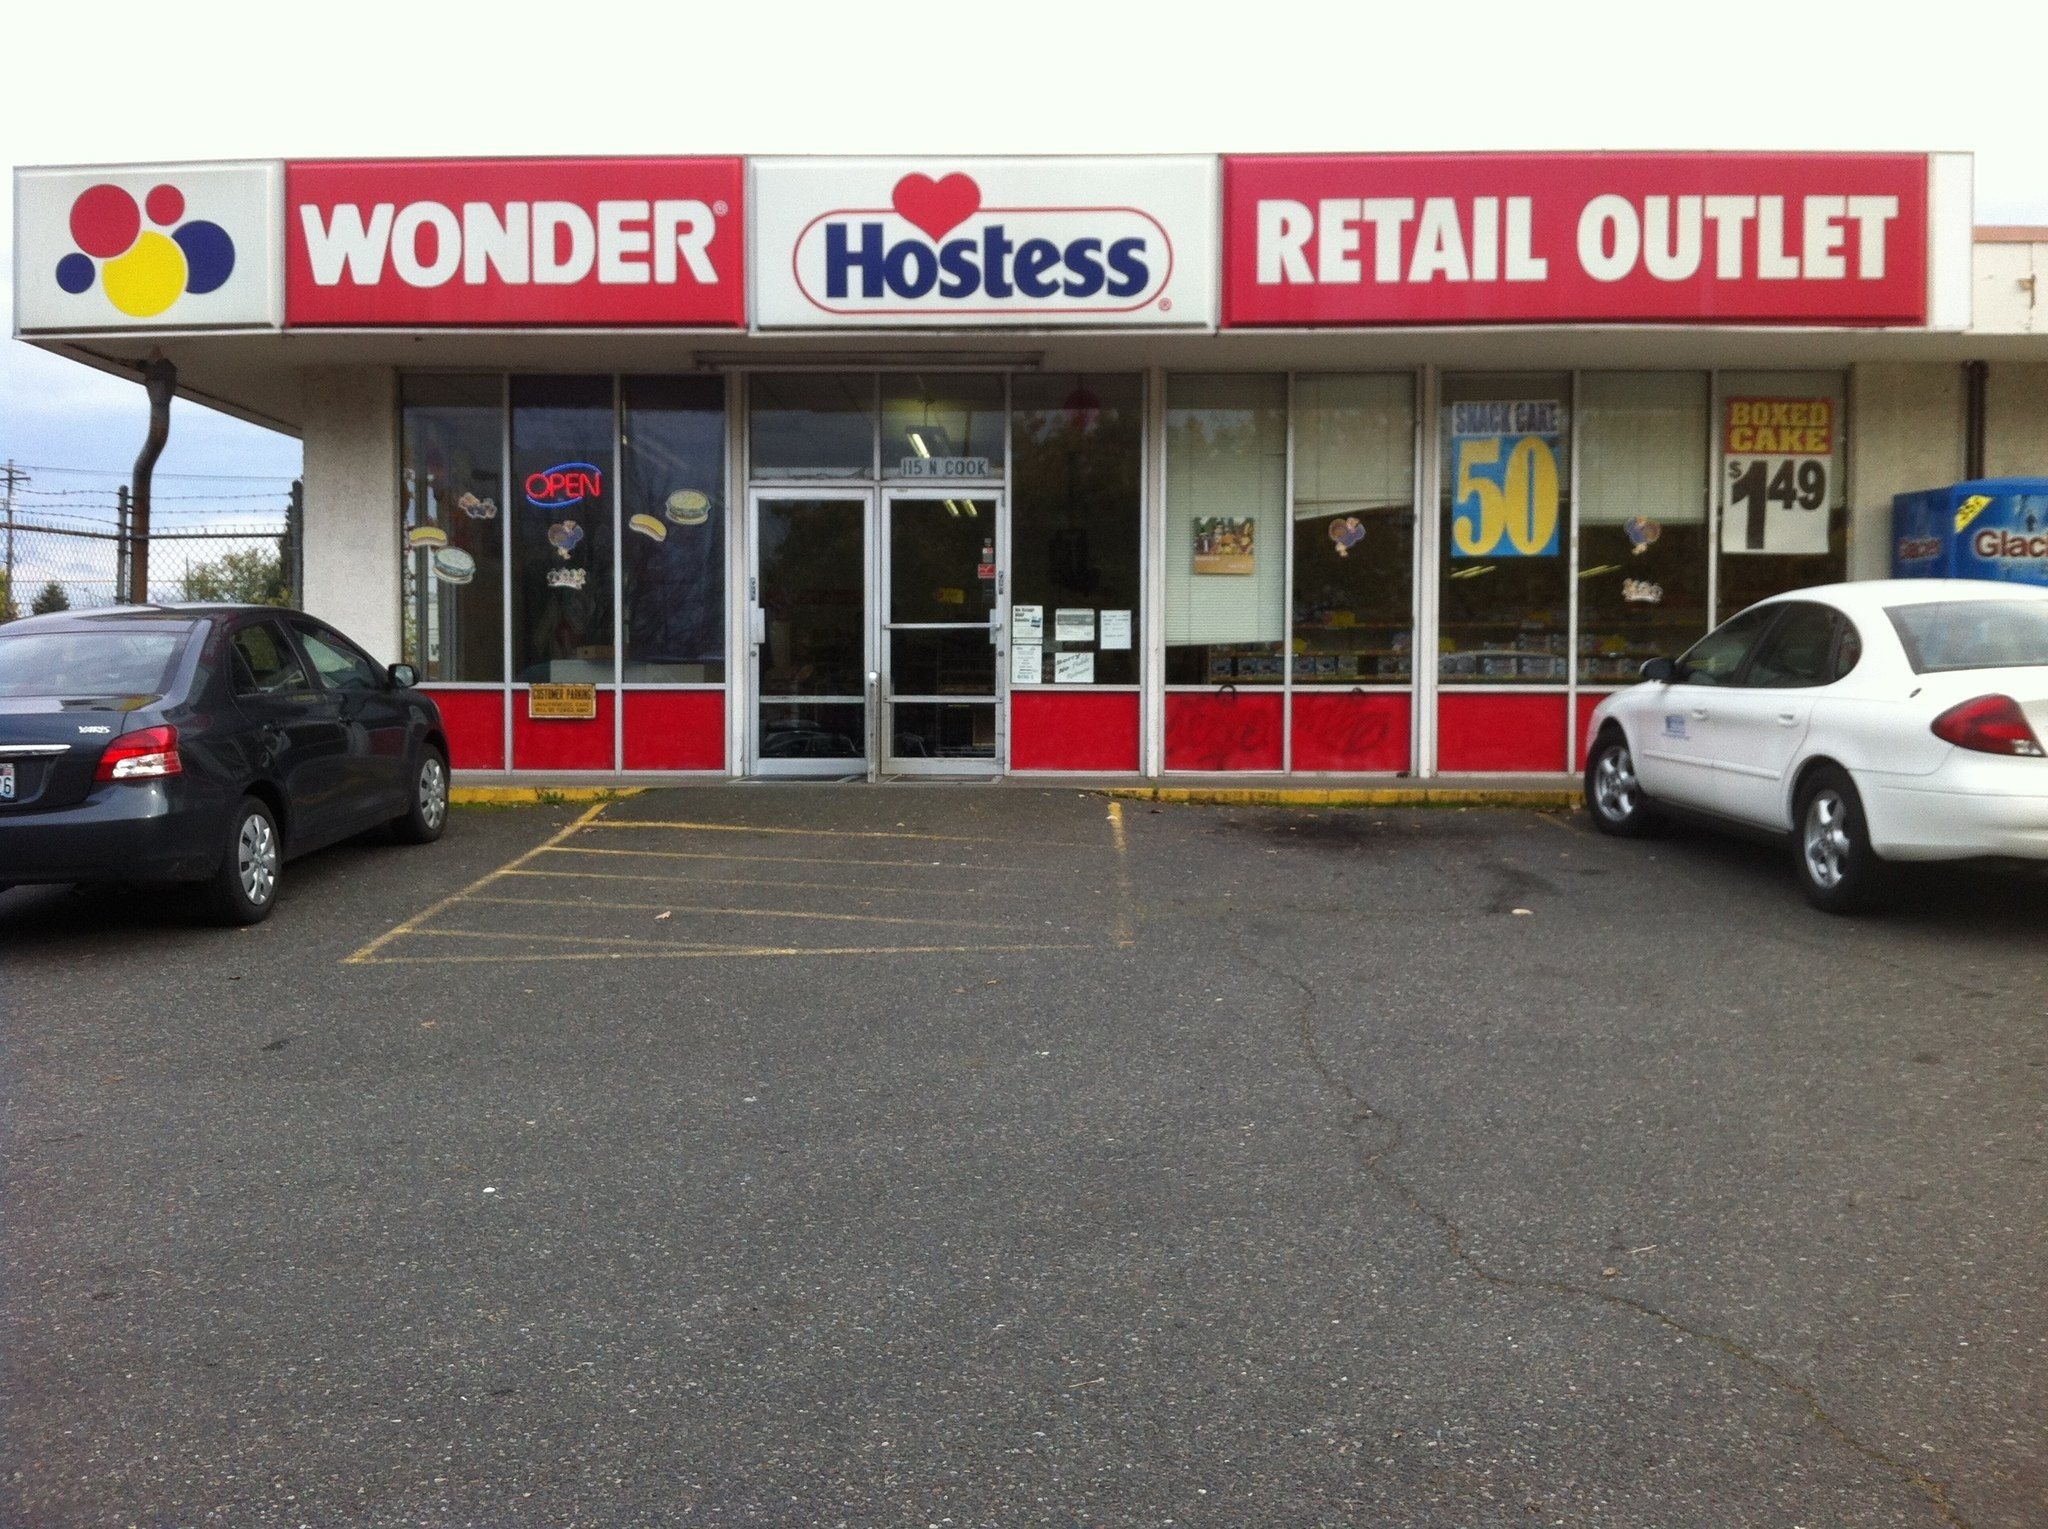 Hostess goes out of business, and Twinkies, Ding Dongs, Ho